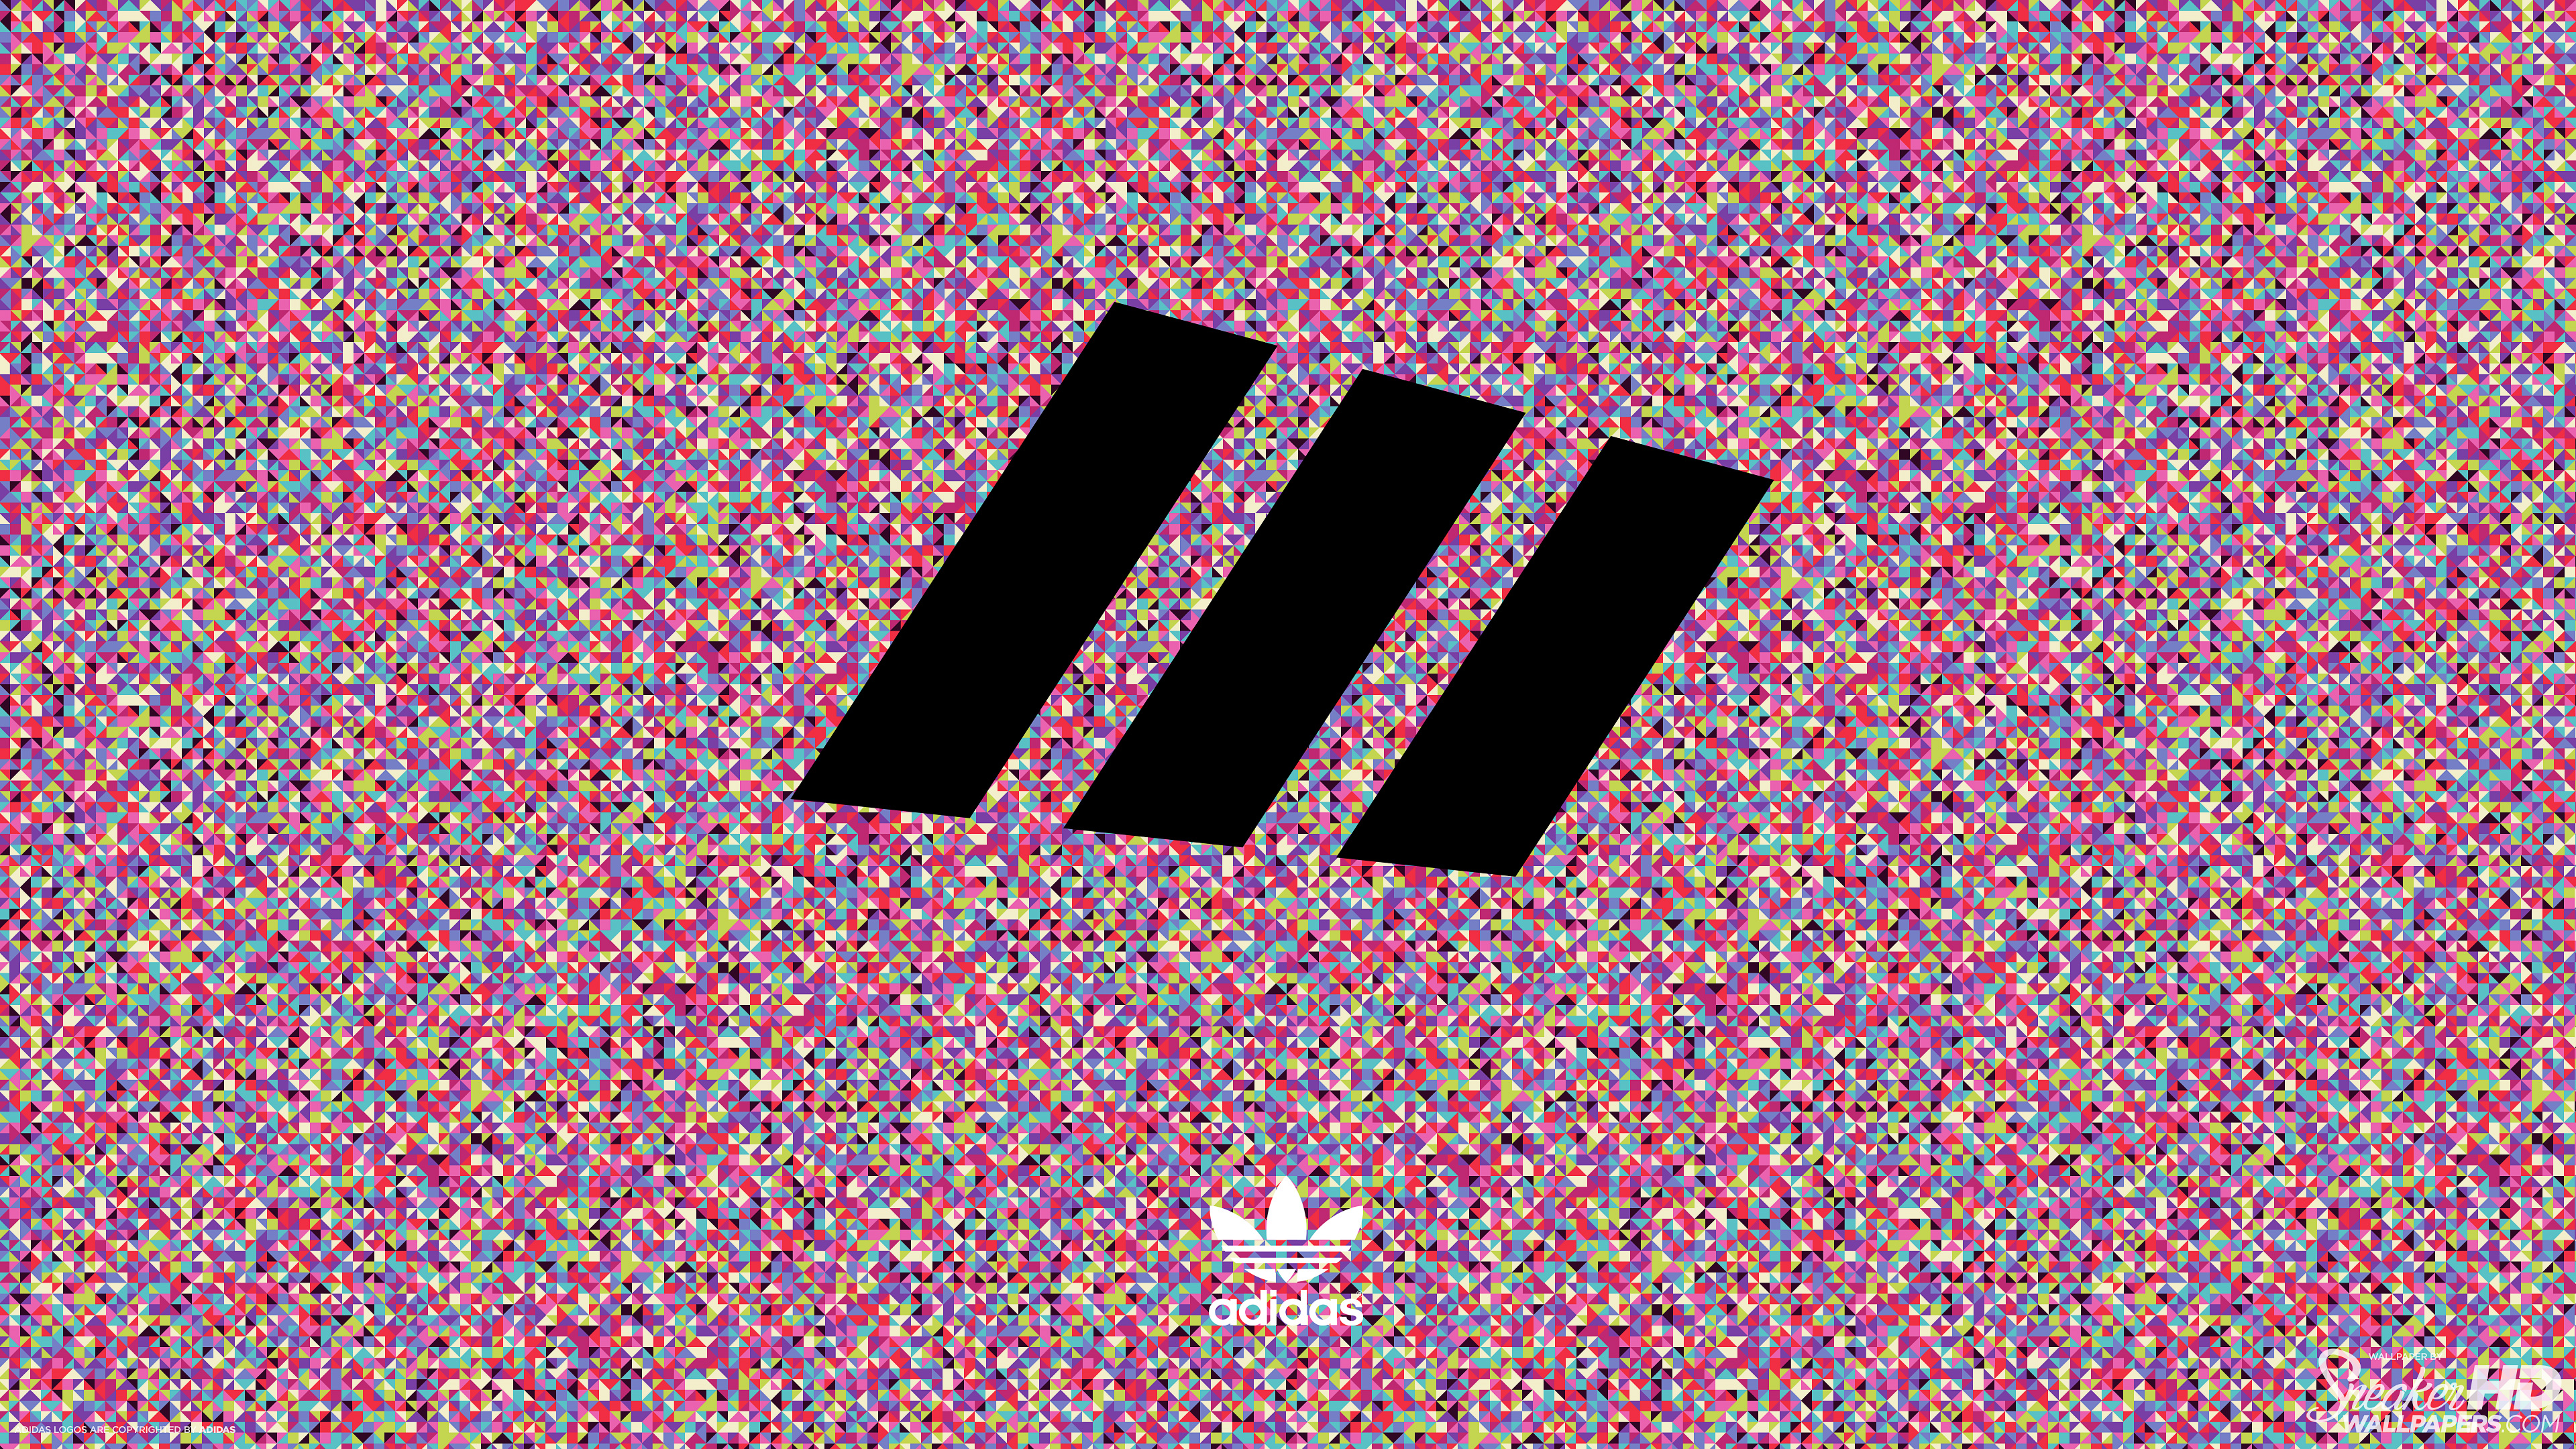 Adidas Flux Wallpaper 3840x2160